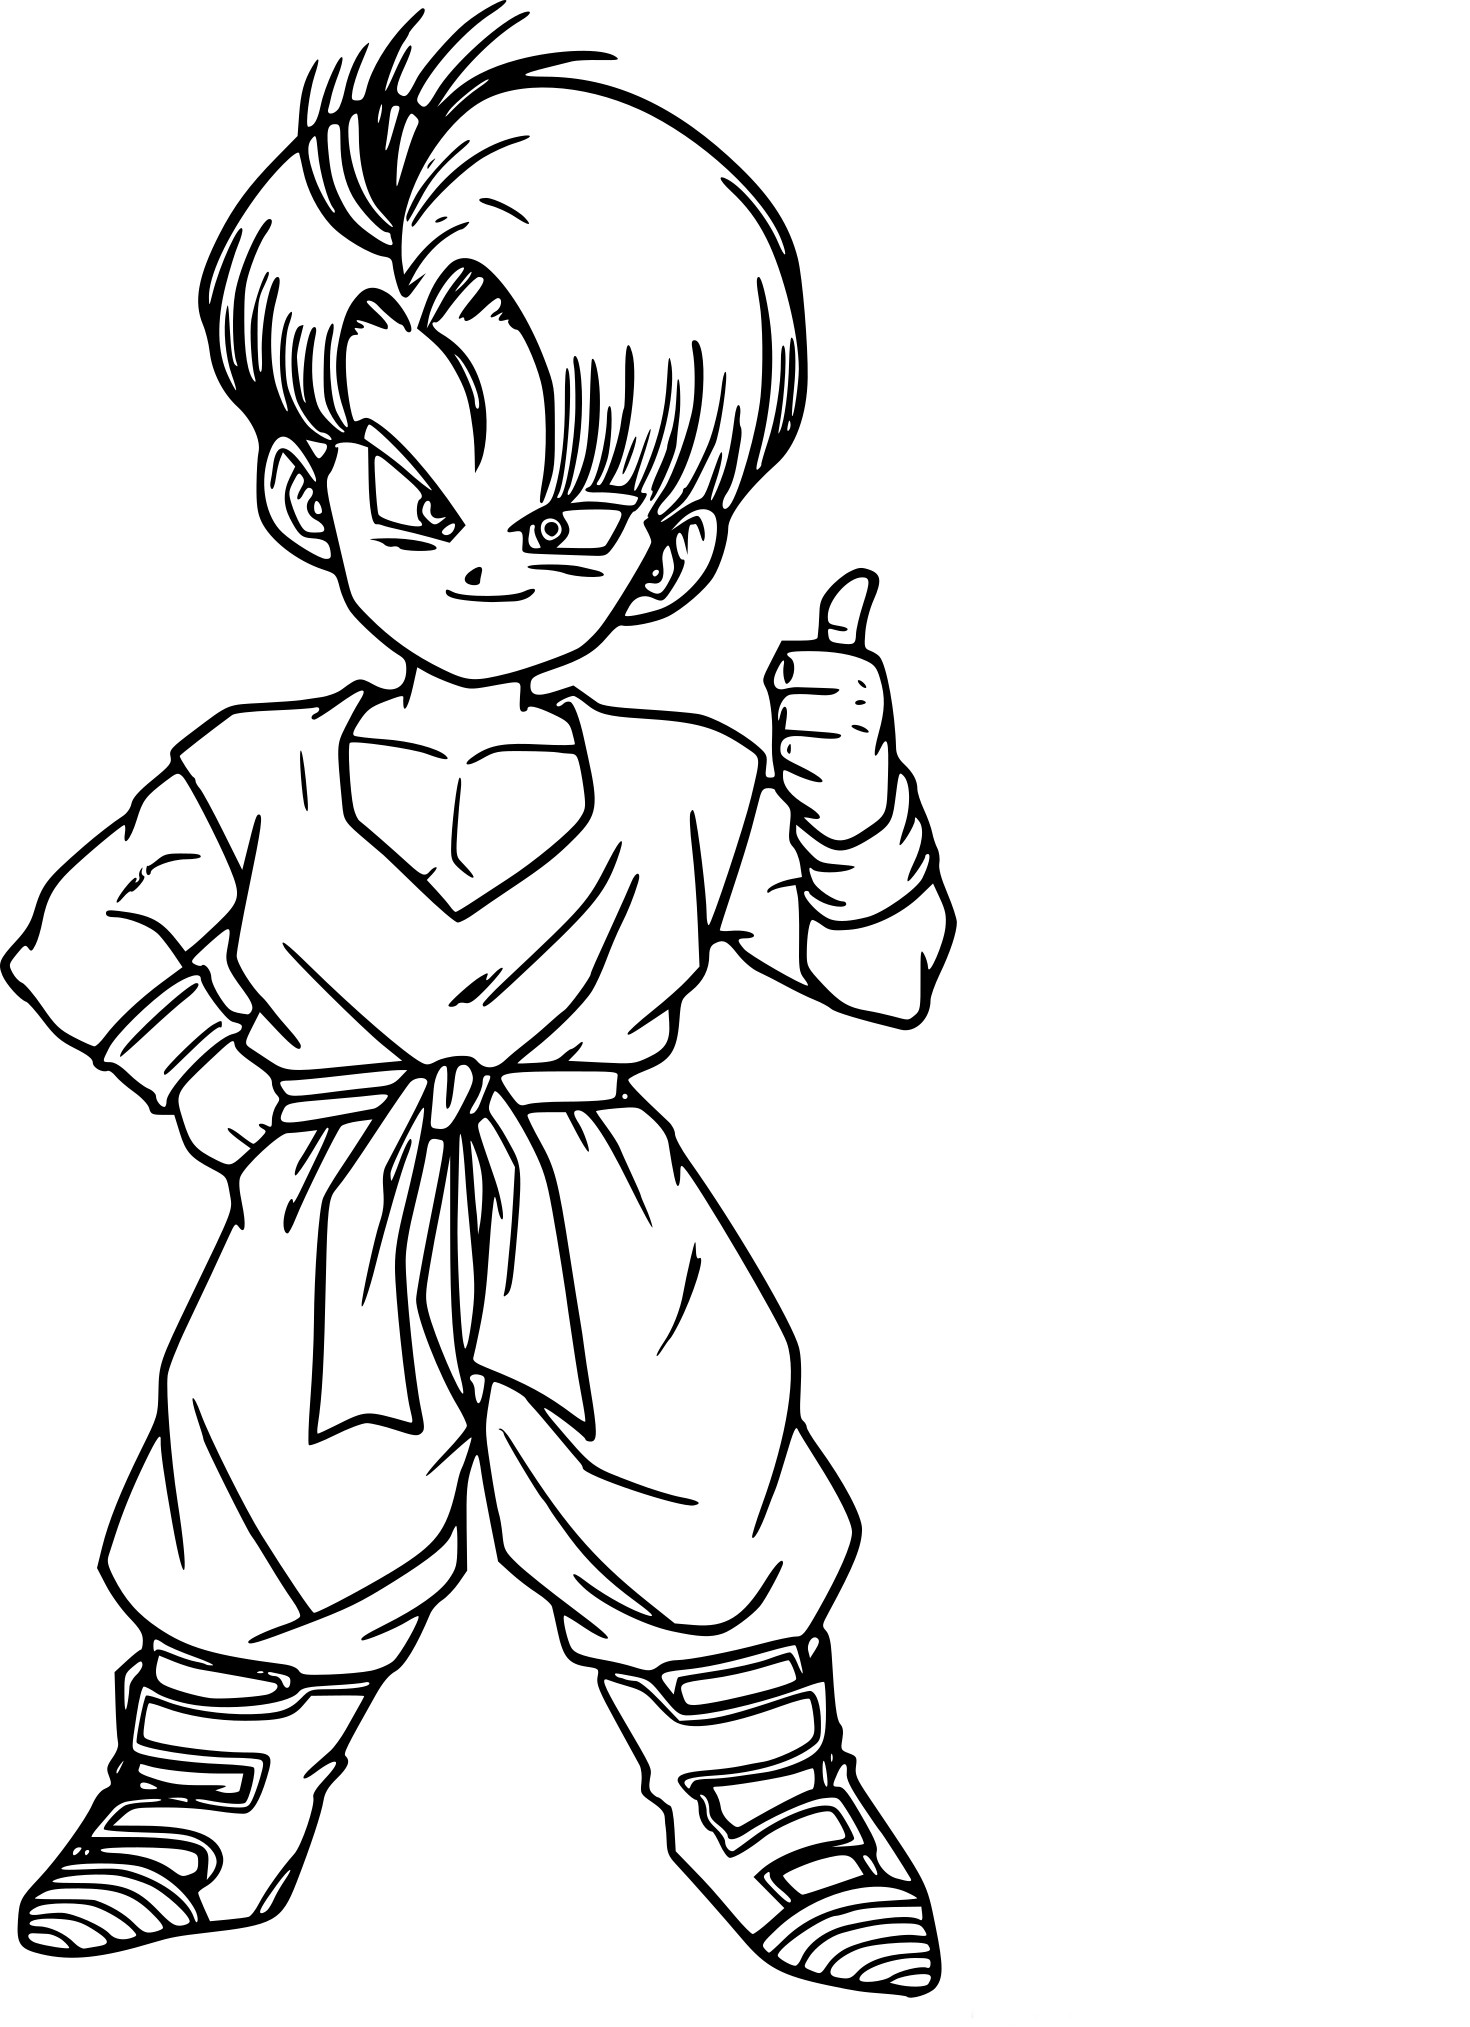 Coloriage Dragon Ball Z Trunks à imprimer sur COLORIAGES .info